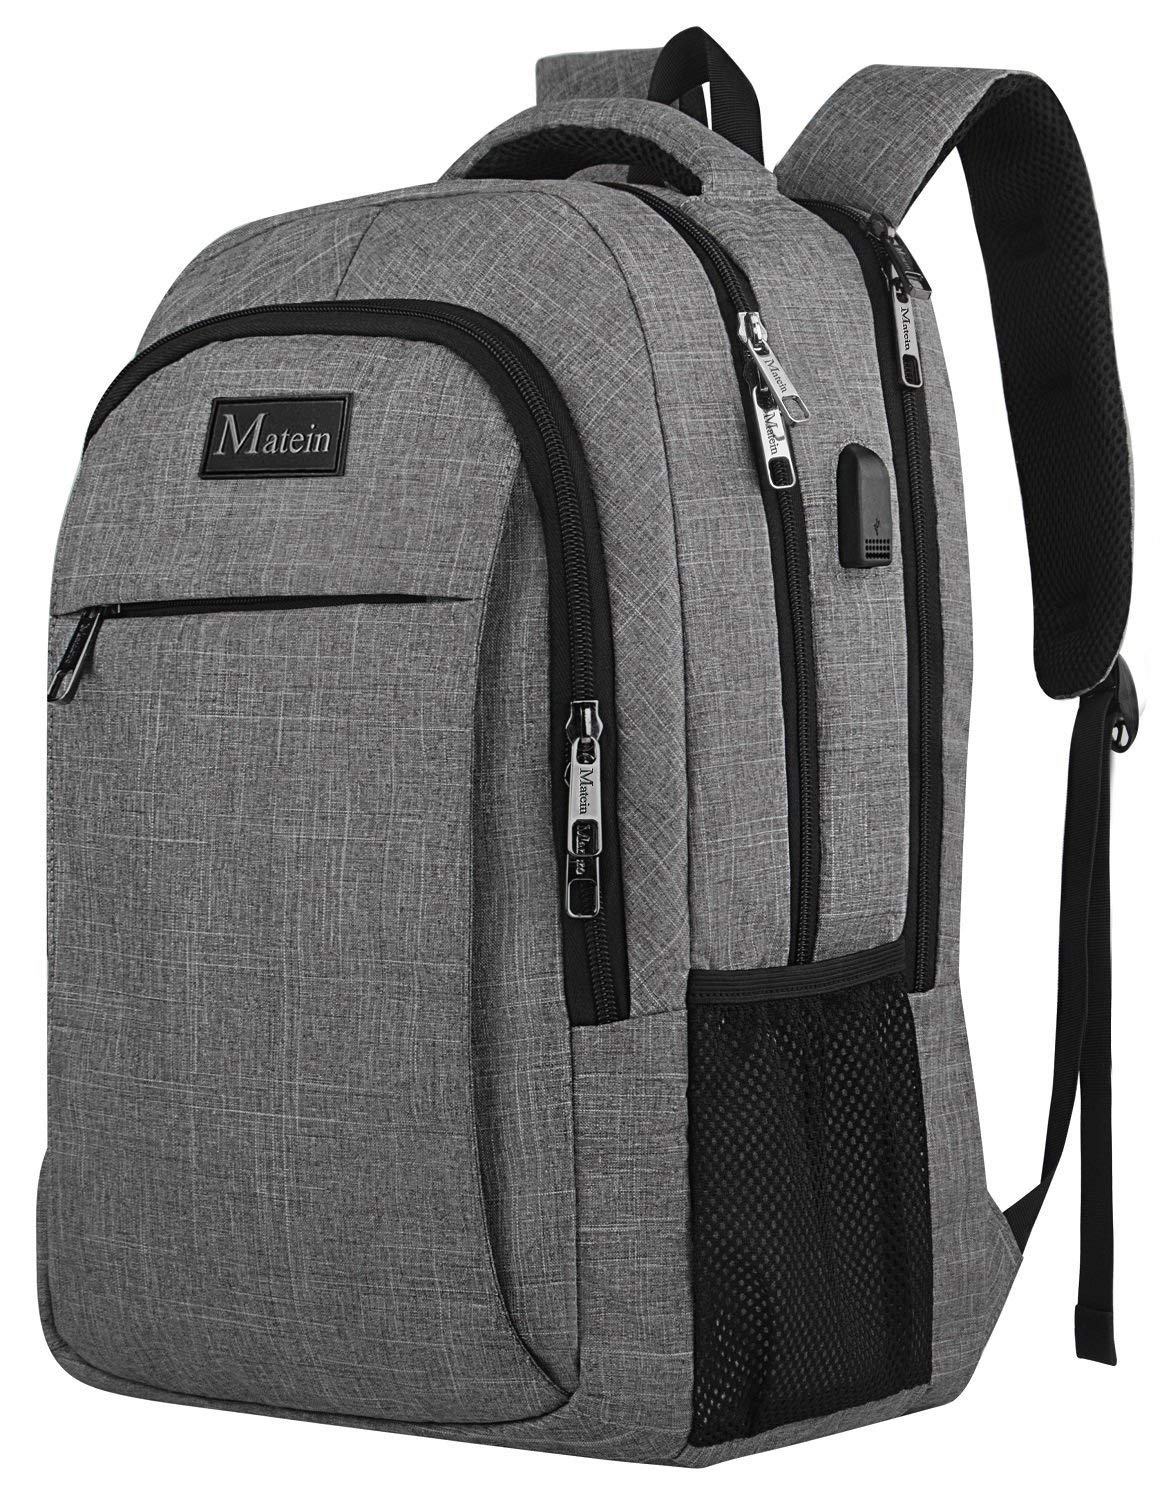 Travel Laptop Backpack,Business Anti Theft Slim Durable Laptops Backpack with USB Charging Port,Water Resistant College School Computer Bag for Women & Men Fits 15.6 Inch Laptop and Notebook - Grey by MATEIN